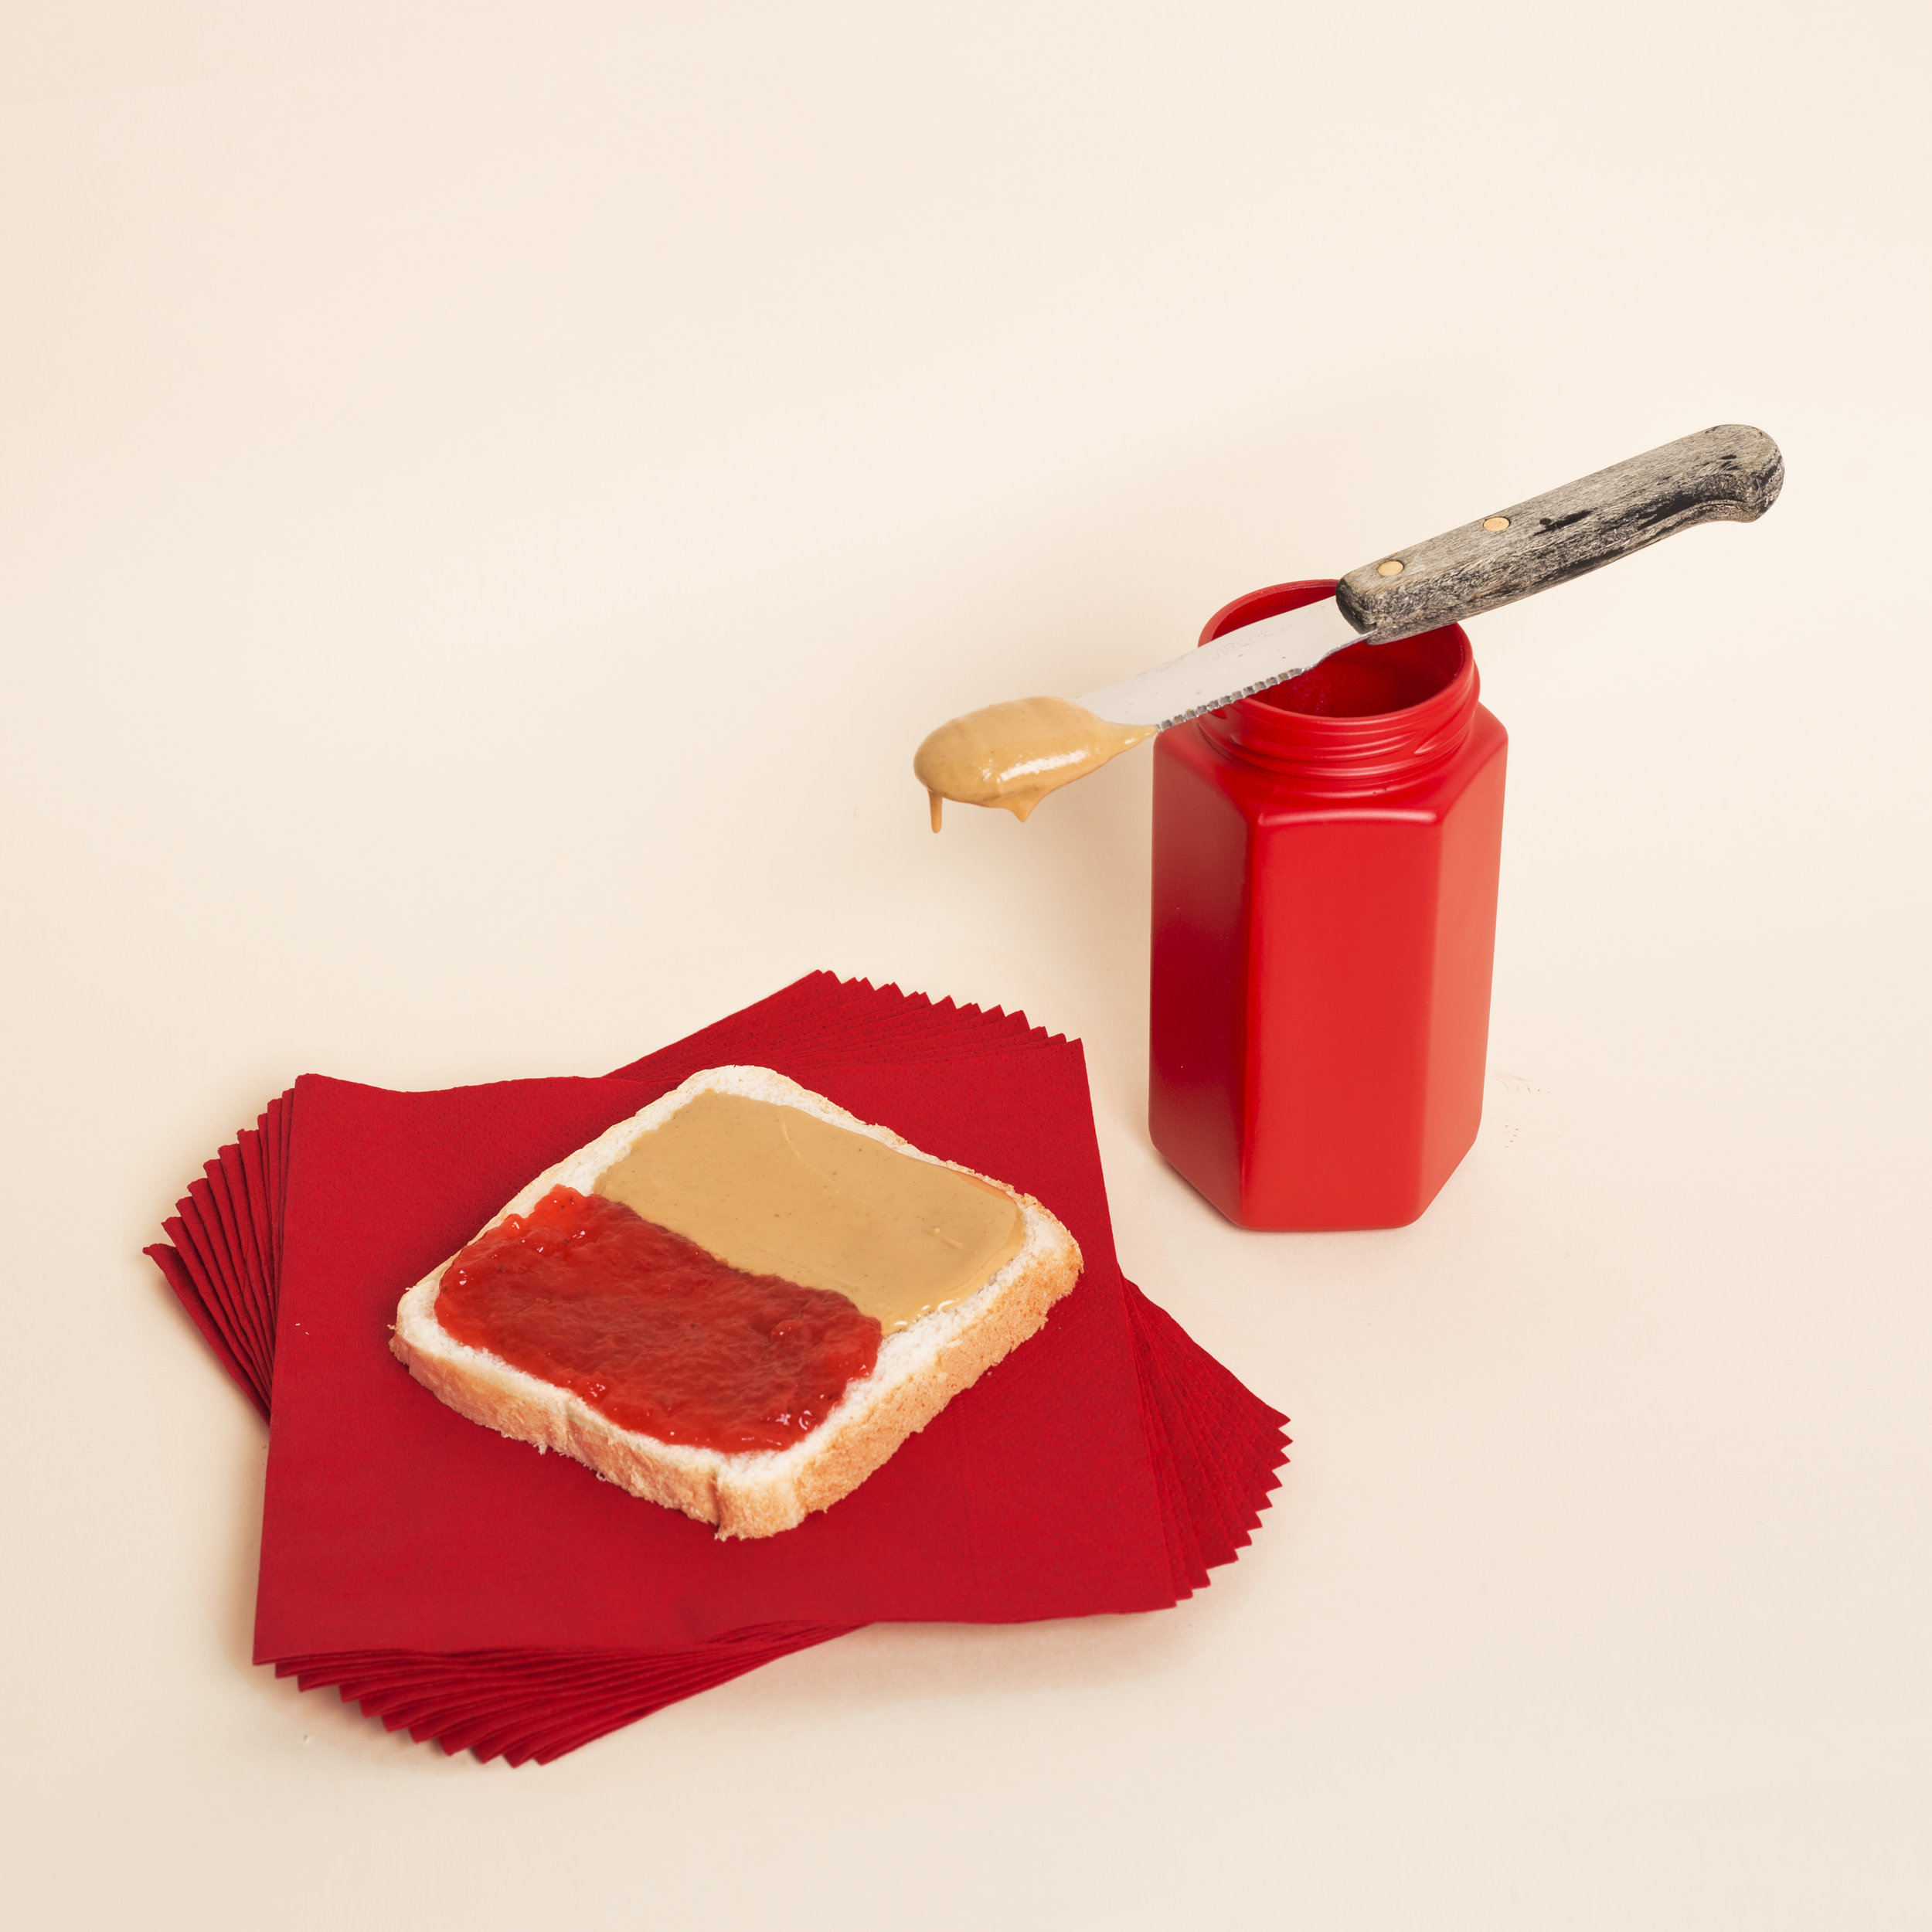 April 2nd - Peanut Butter and Jelly Day